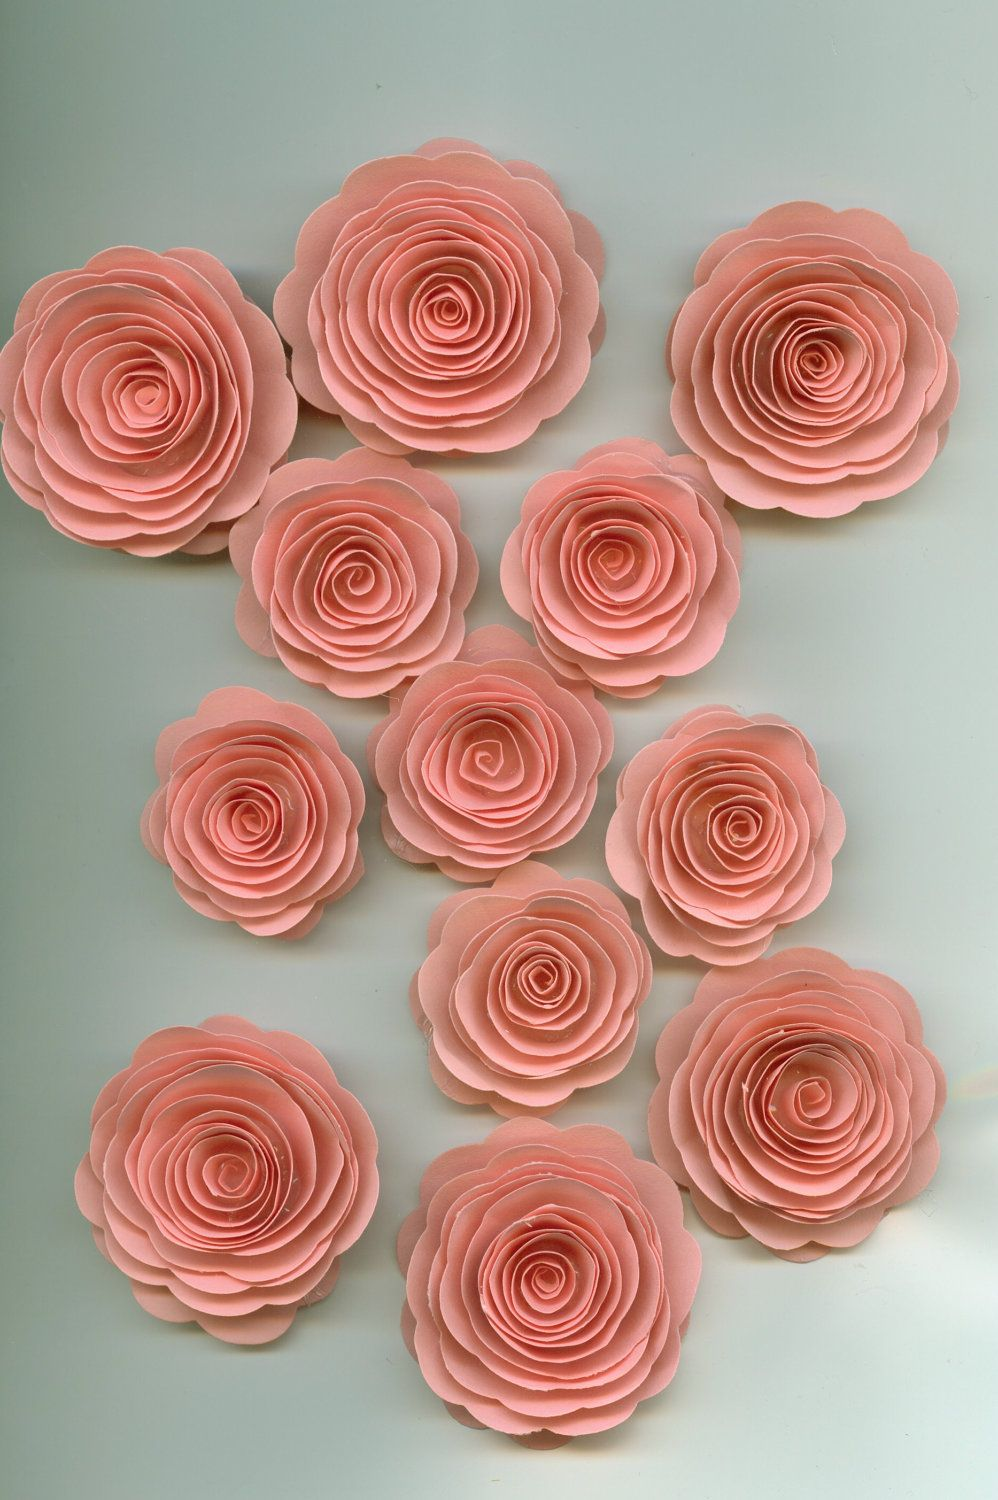 Pretty Pink Roses Spiral Paper Flowers Large Lot Flowers Crafts